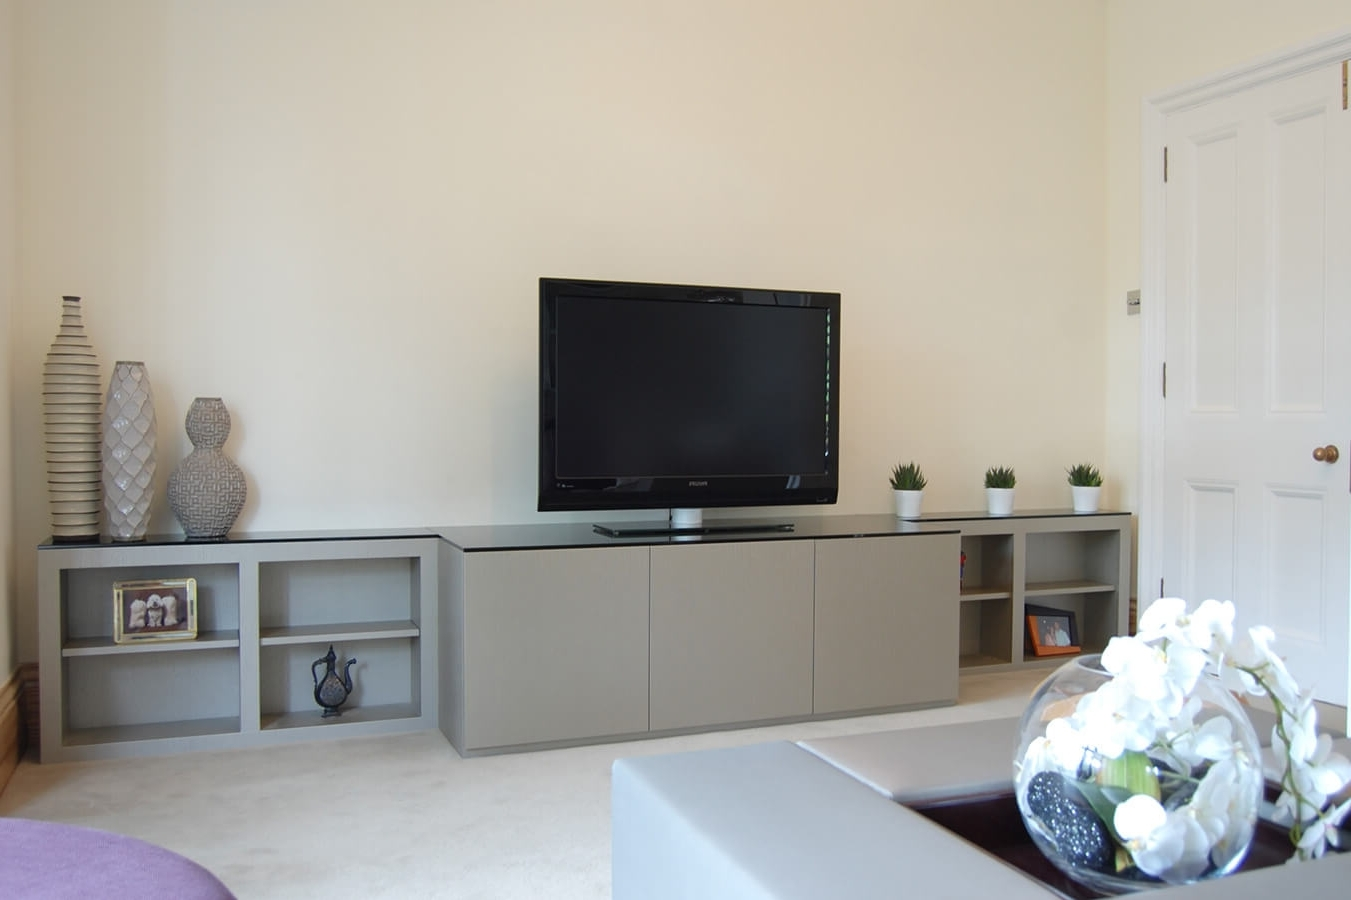 Display, Tv And Media Units Regarding Bespoke Tv Stand (View 8 of 15)